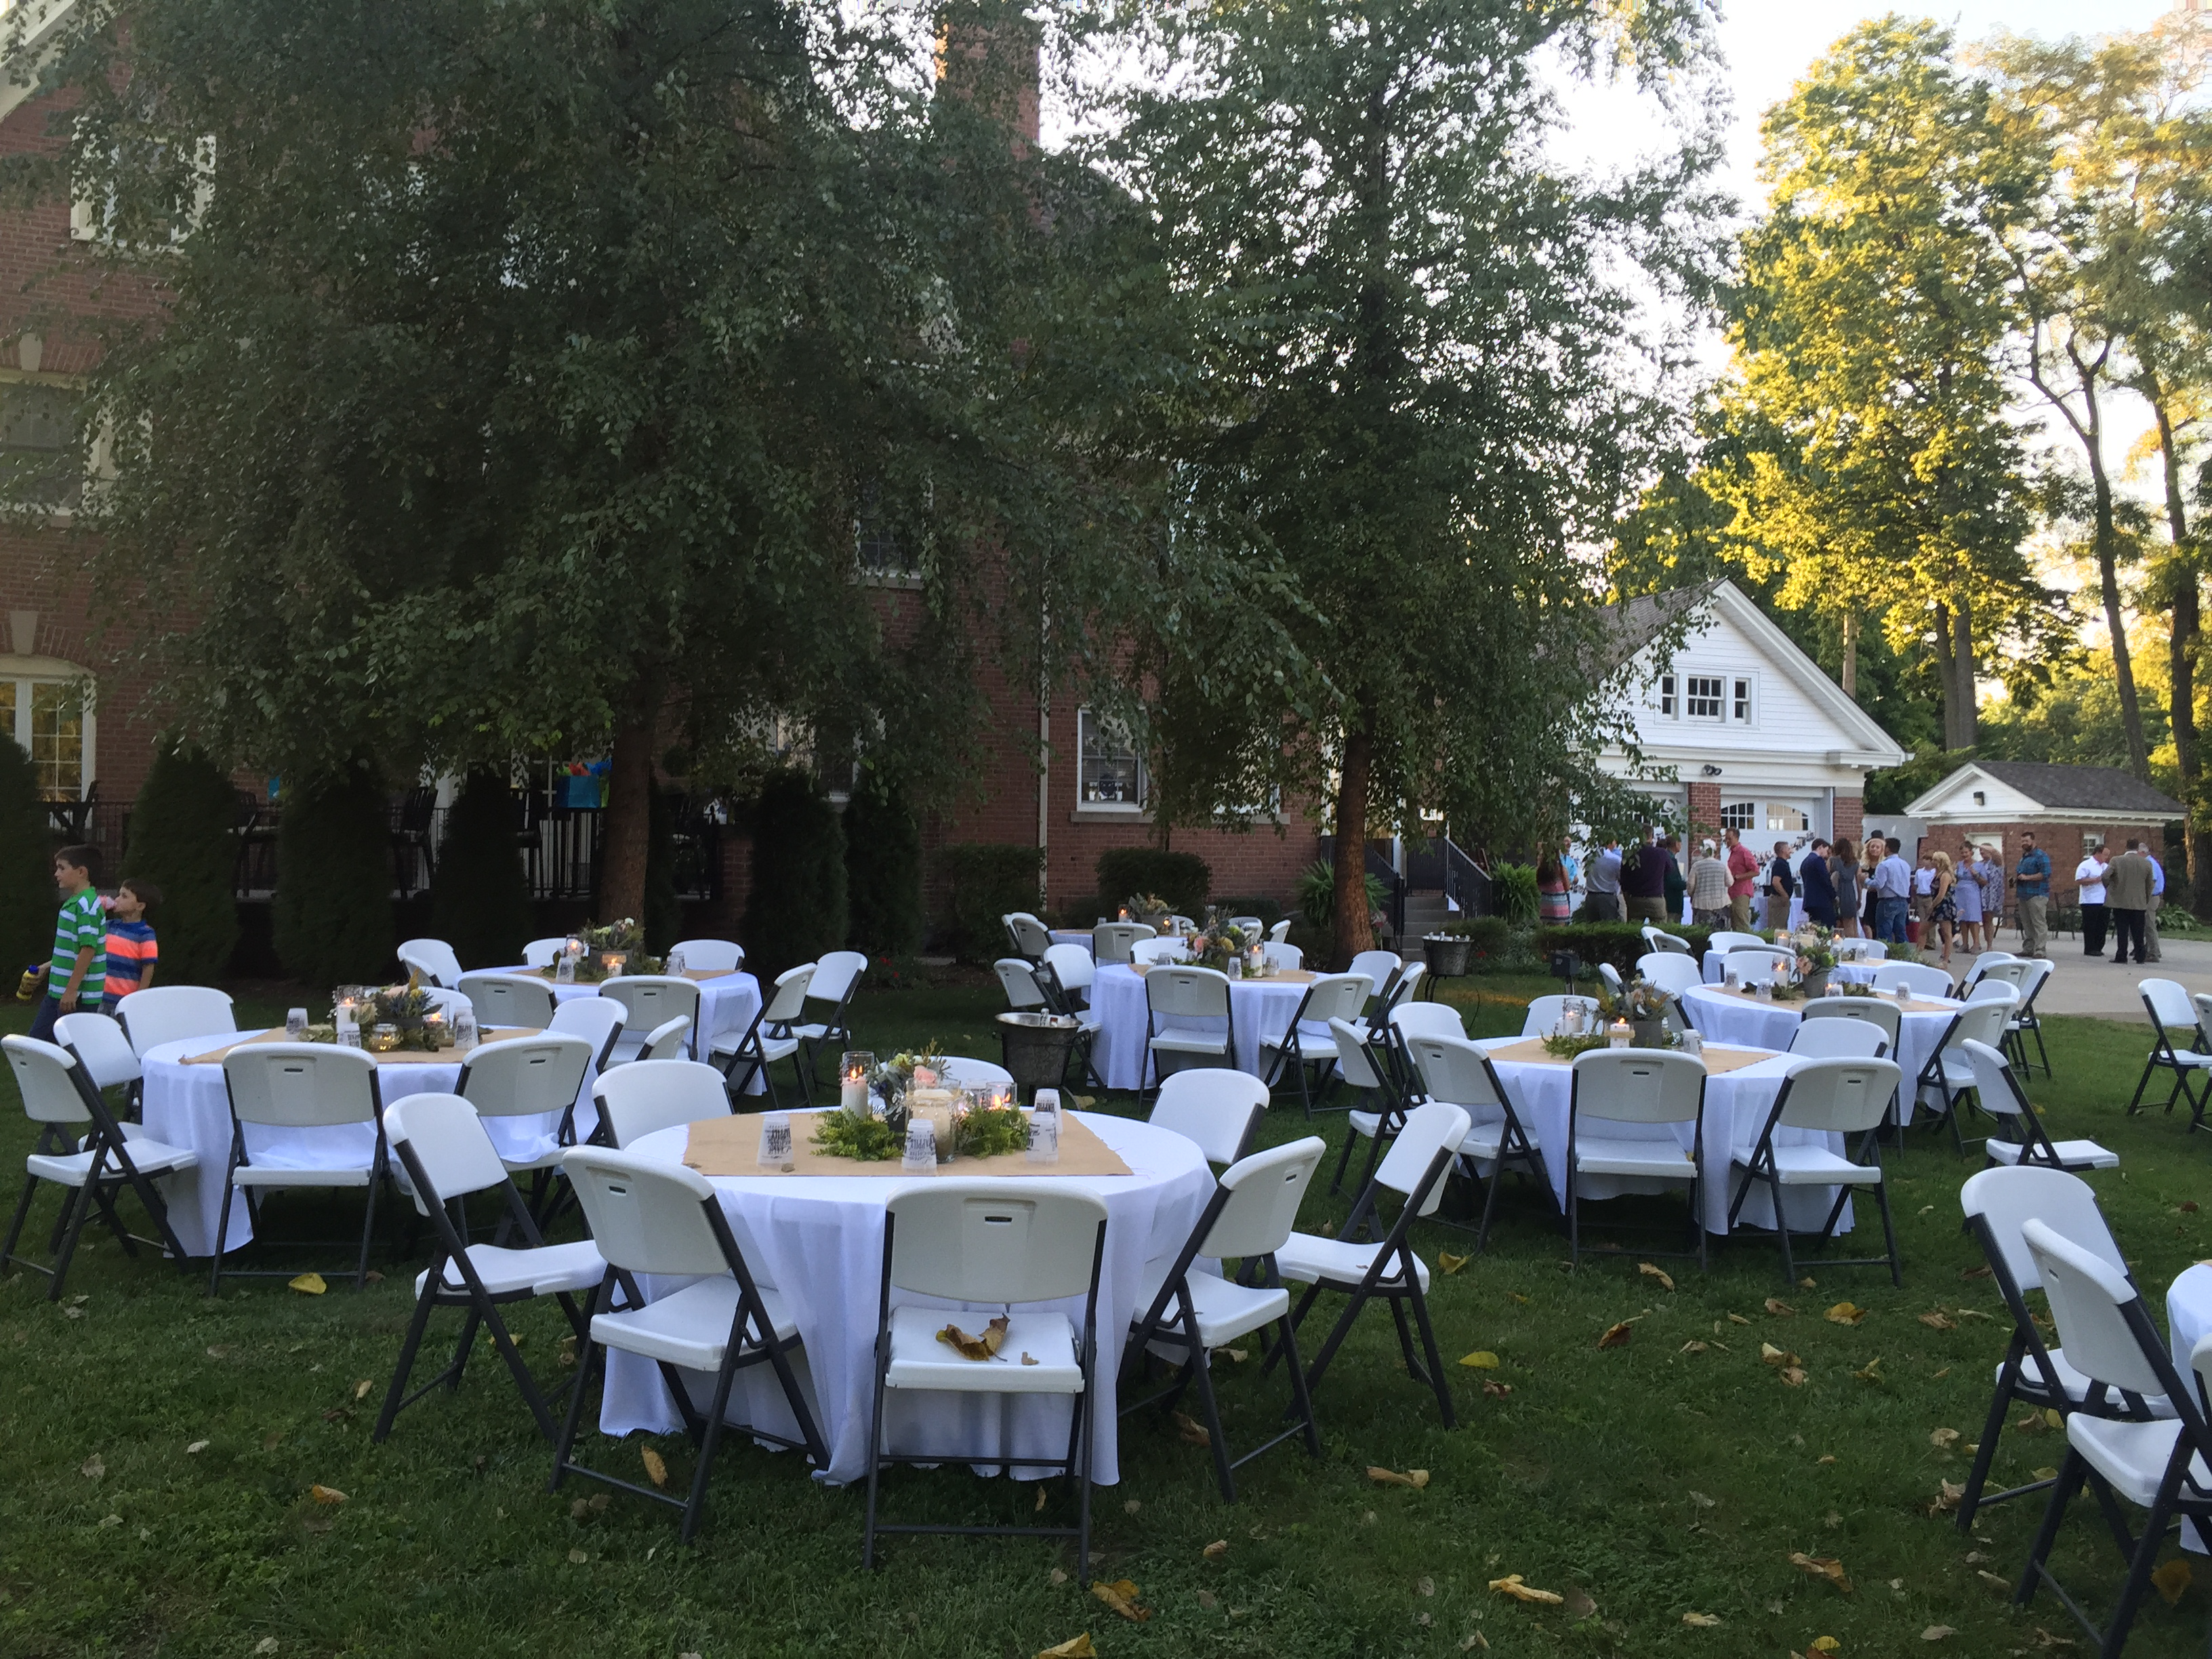 Banquet Seating on the lawn | Outdoor Event